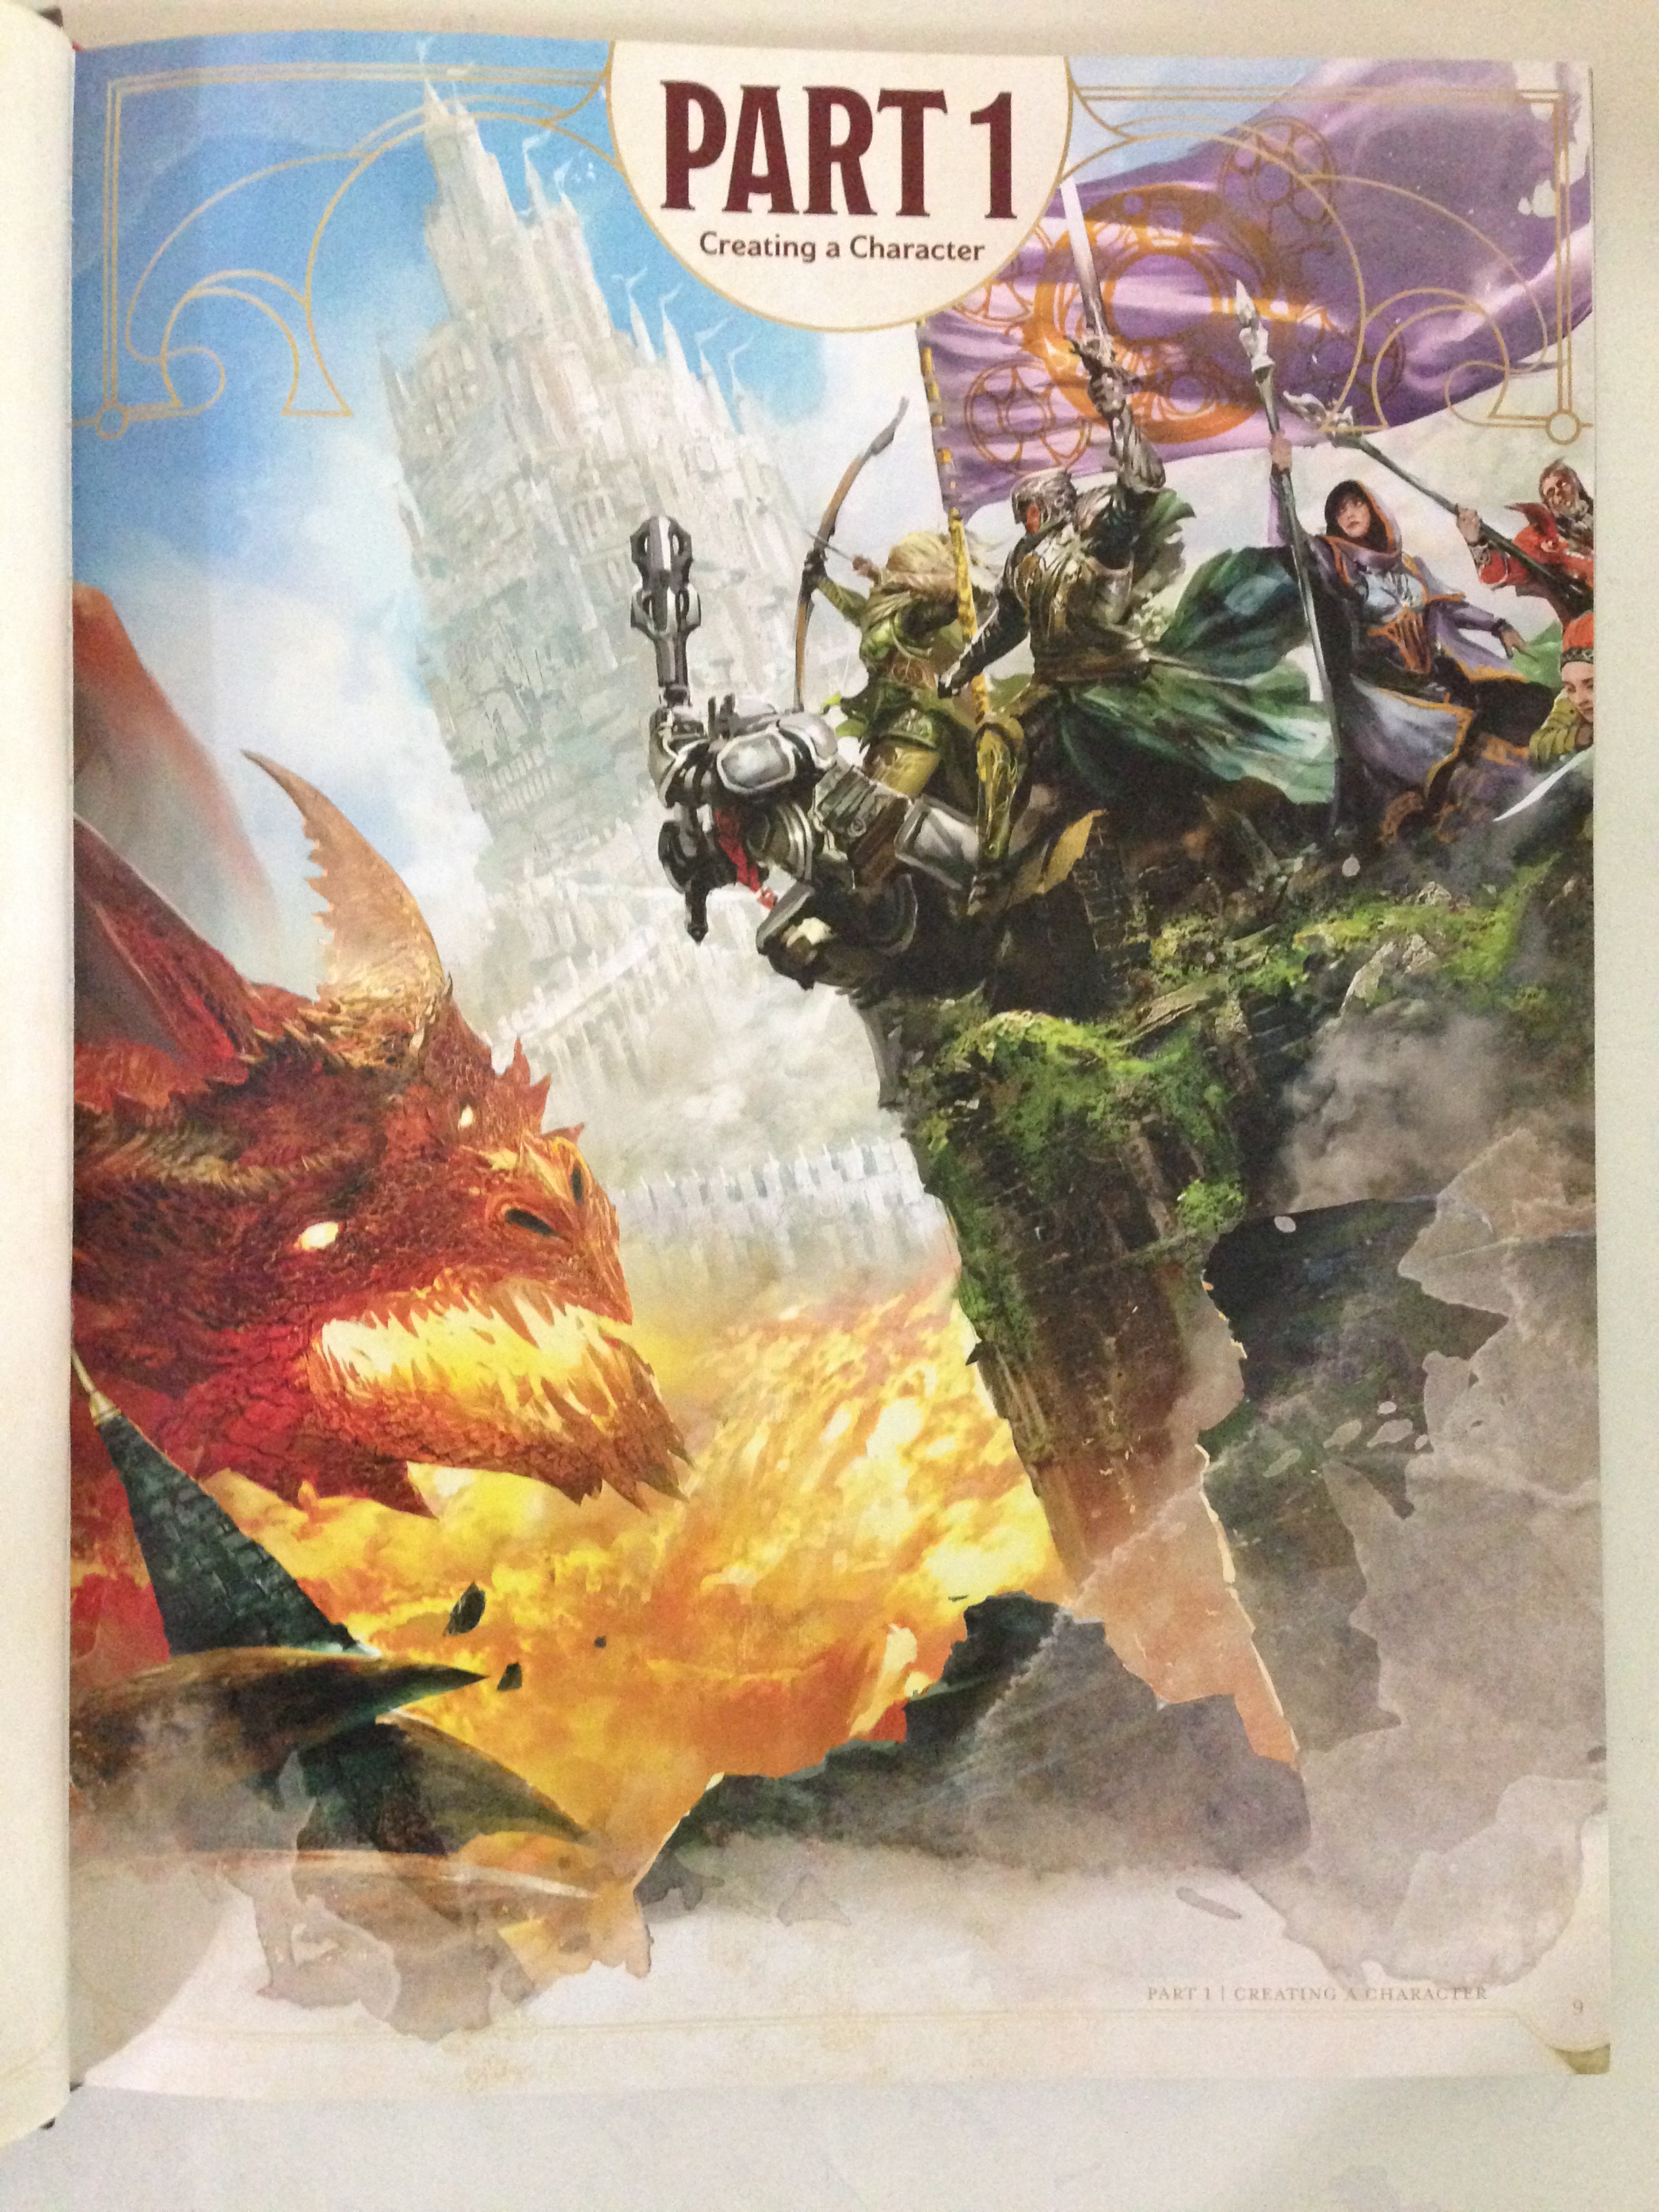 Splash page art of Player's Handbook, A Core Rulebook for Dungeons & Dragons 5th Edition